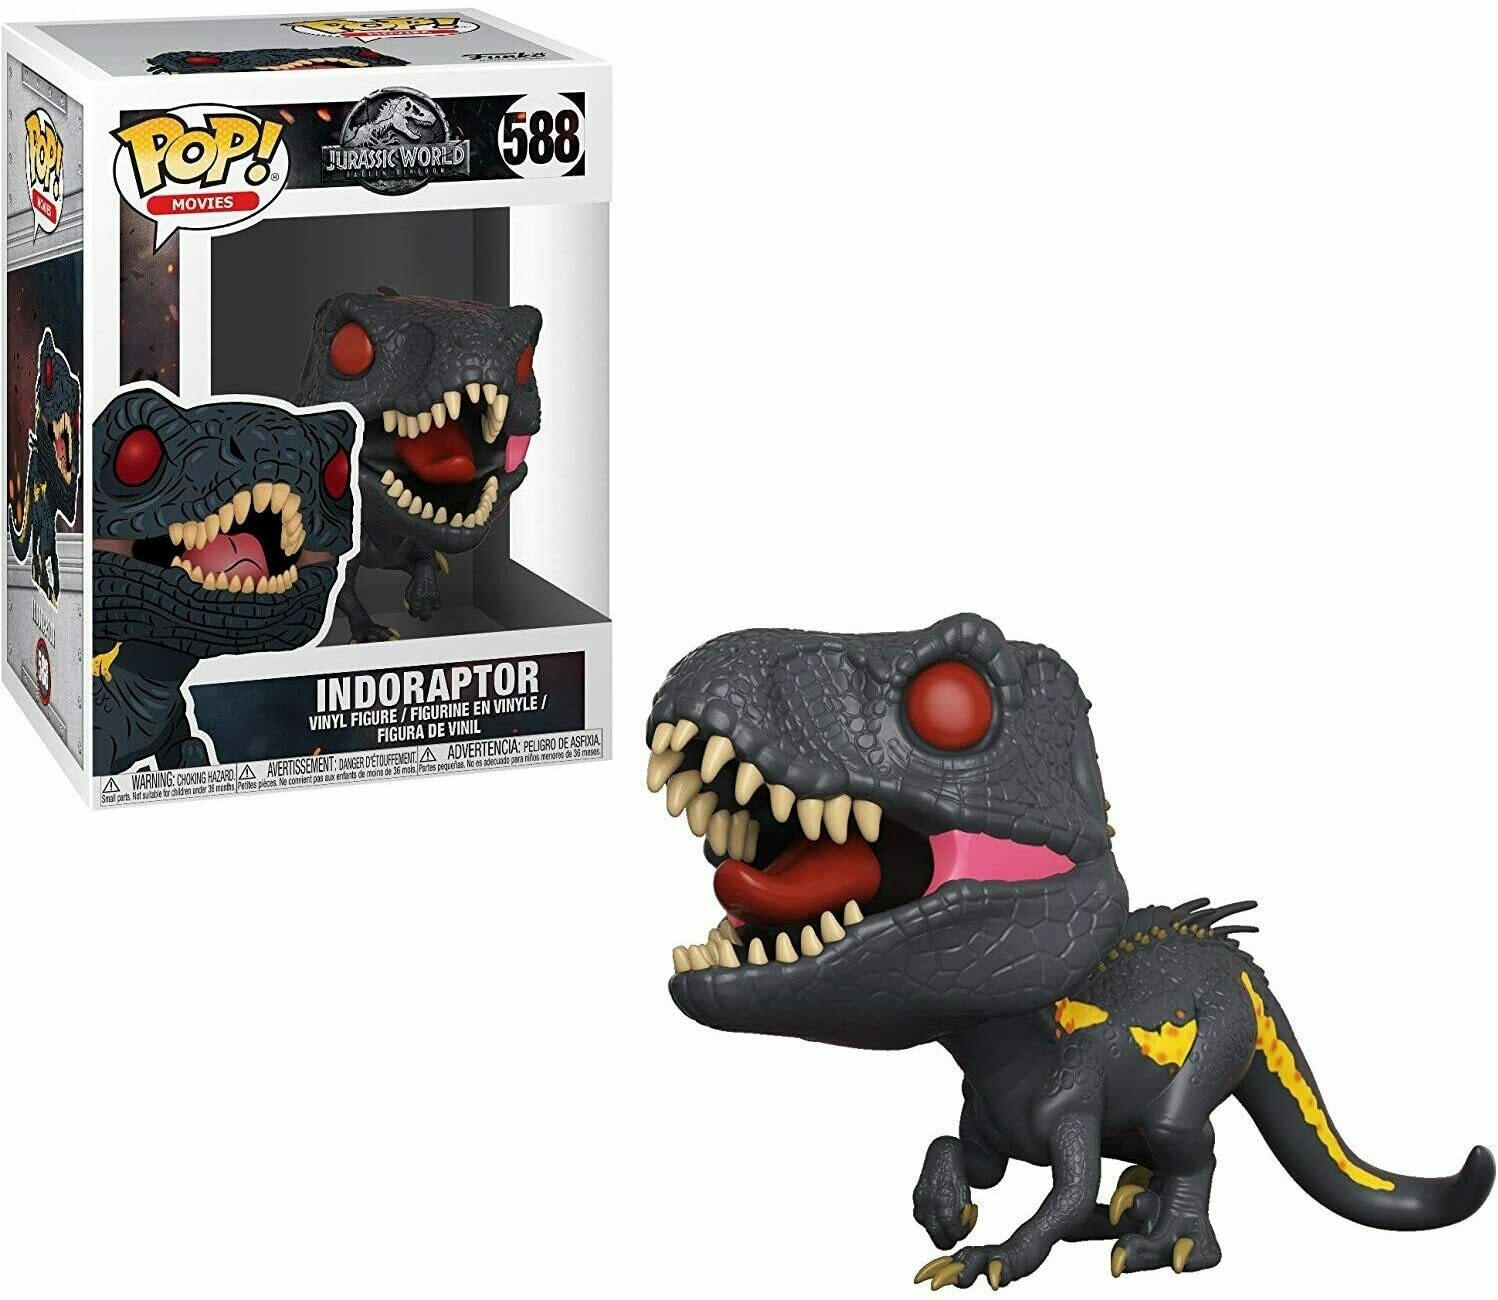 Funko Pop! Indoraptor - Jurassic World